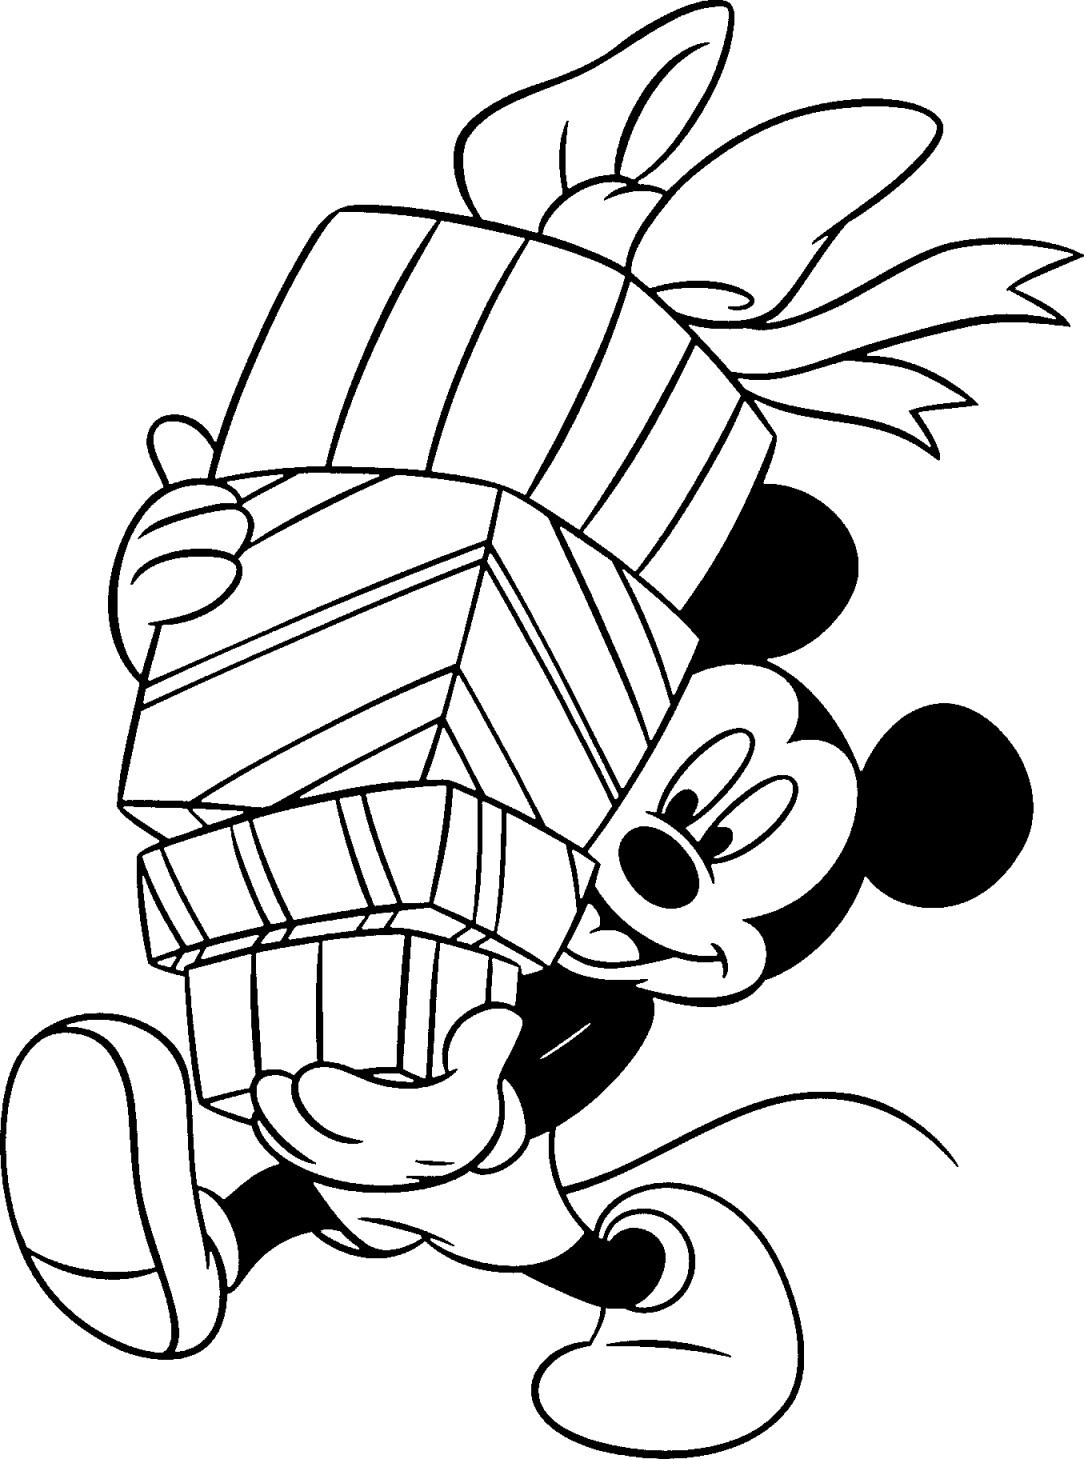 Best ideas about Disney Printable Coloring Pages . Save or Pin Free Disney Christmas Printable Coloring Pages for Kids Now.